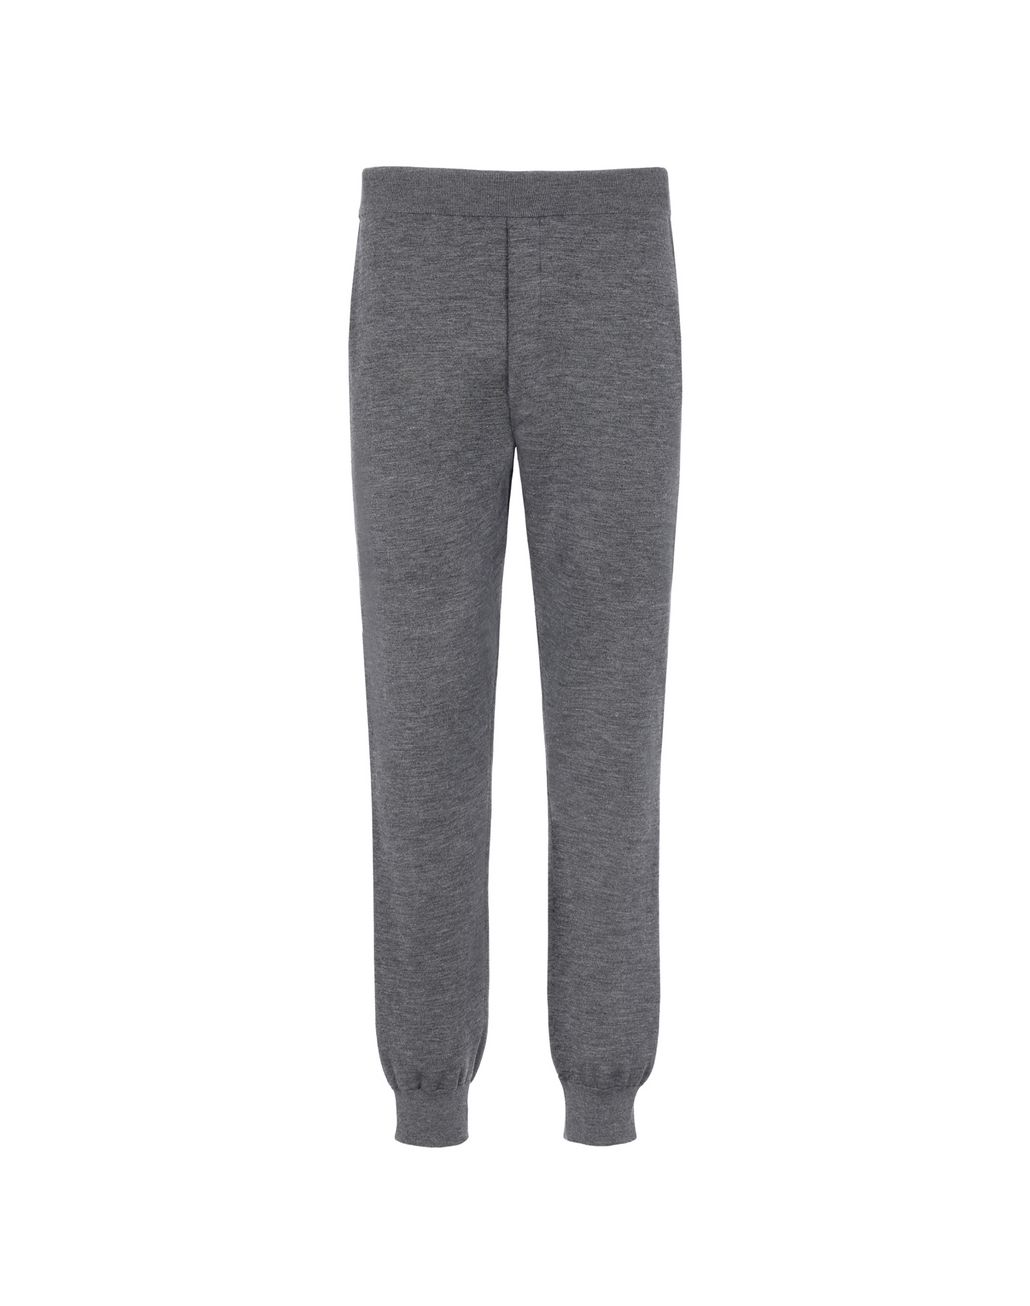 BRIONI Grey Jogging Trousers Trousers Man f